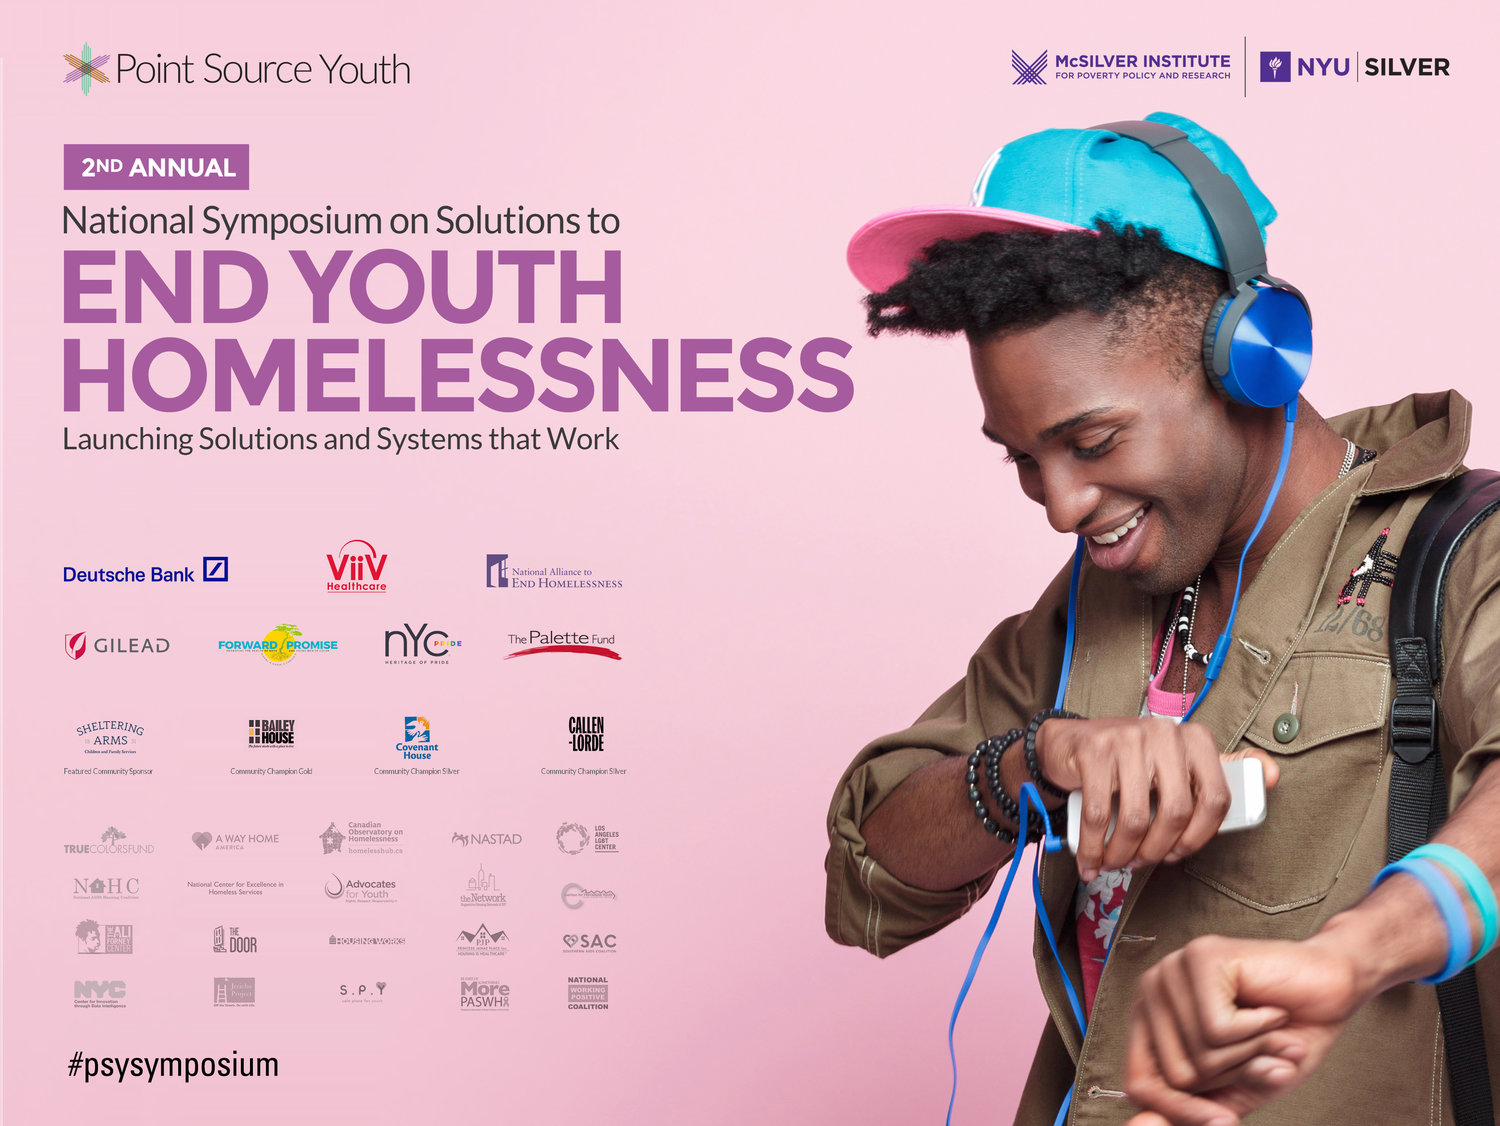 Second National Symposium on Solutions to End Youth Homelessness